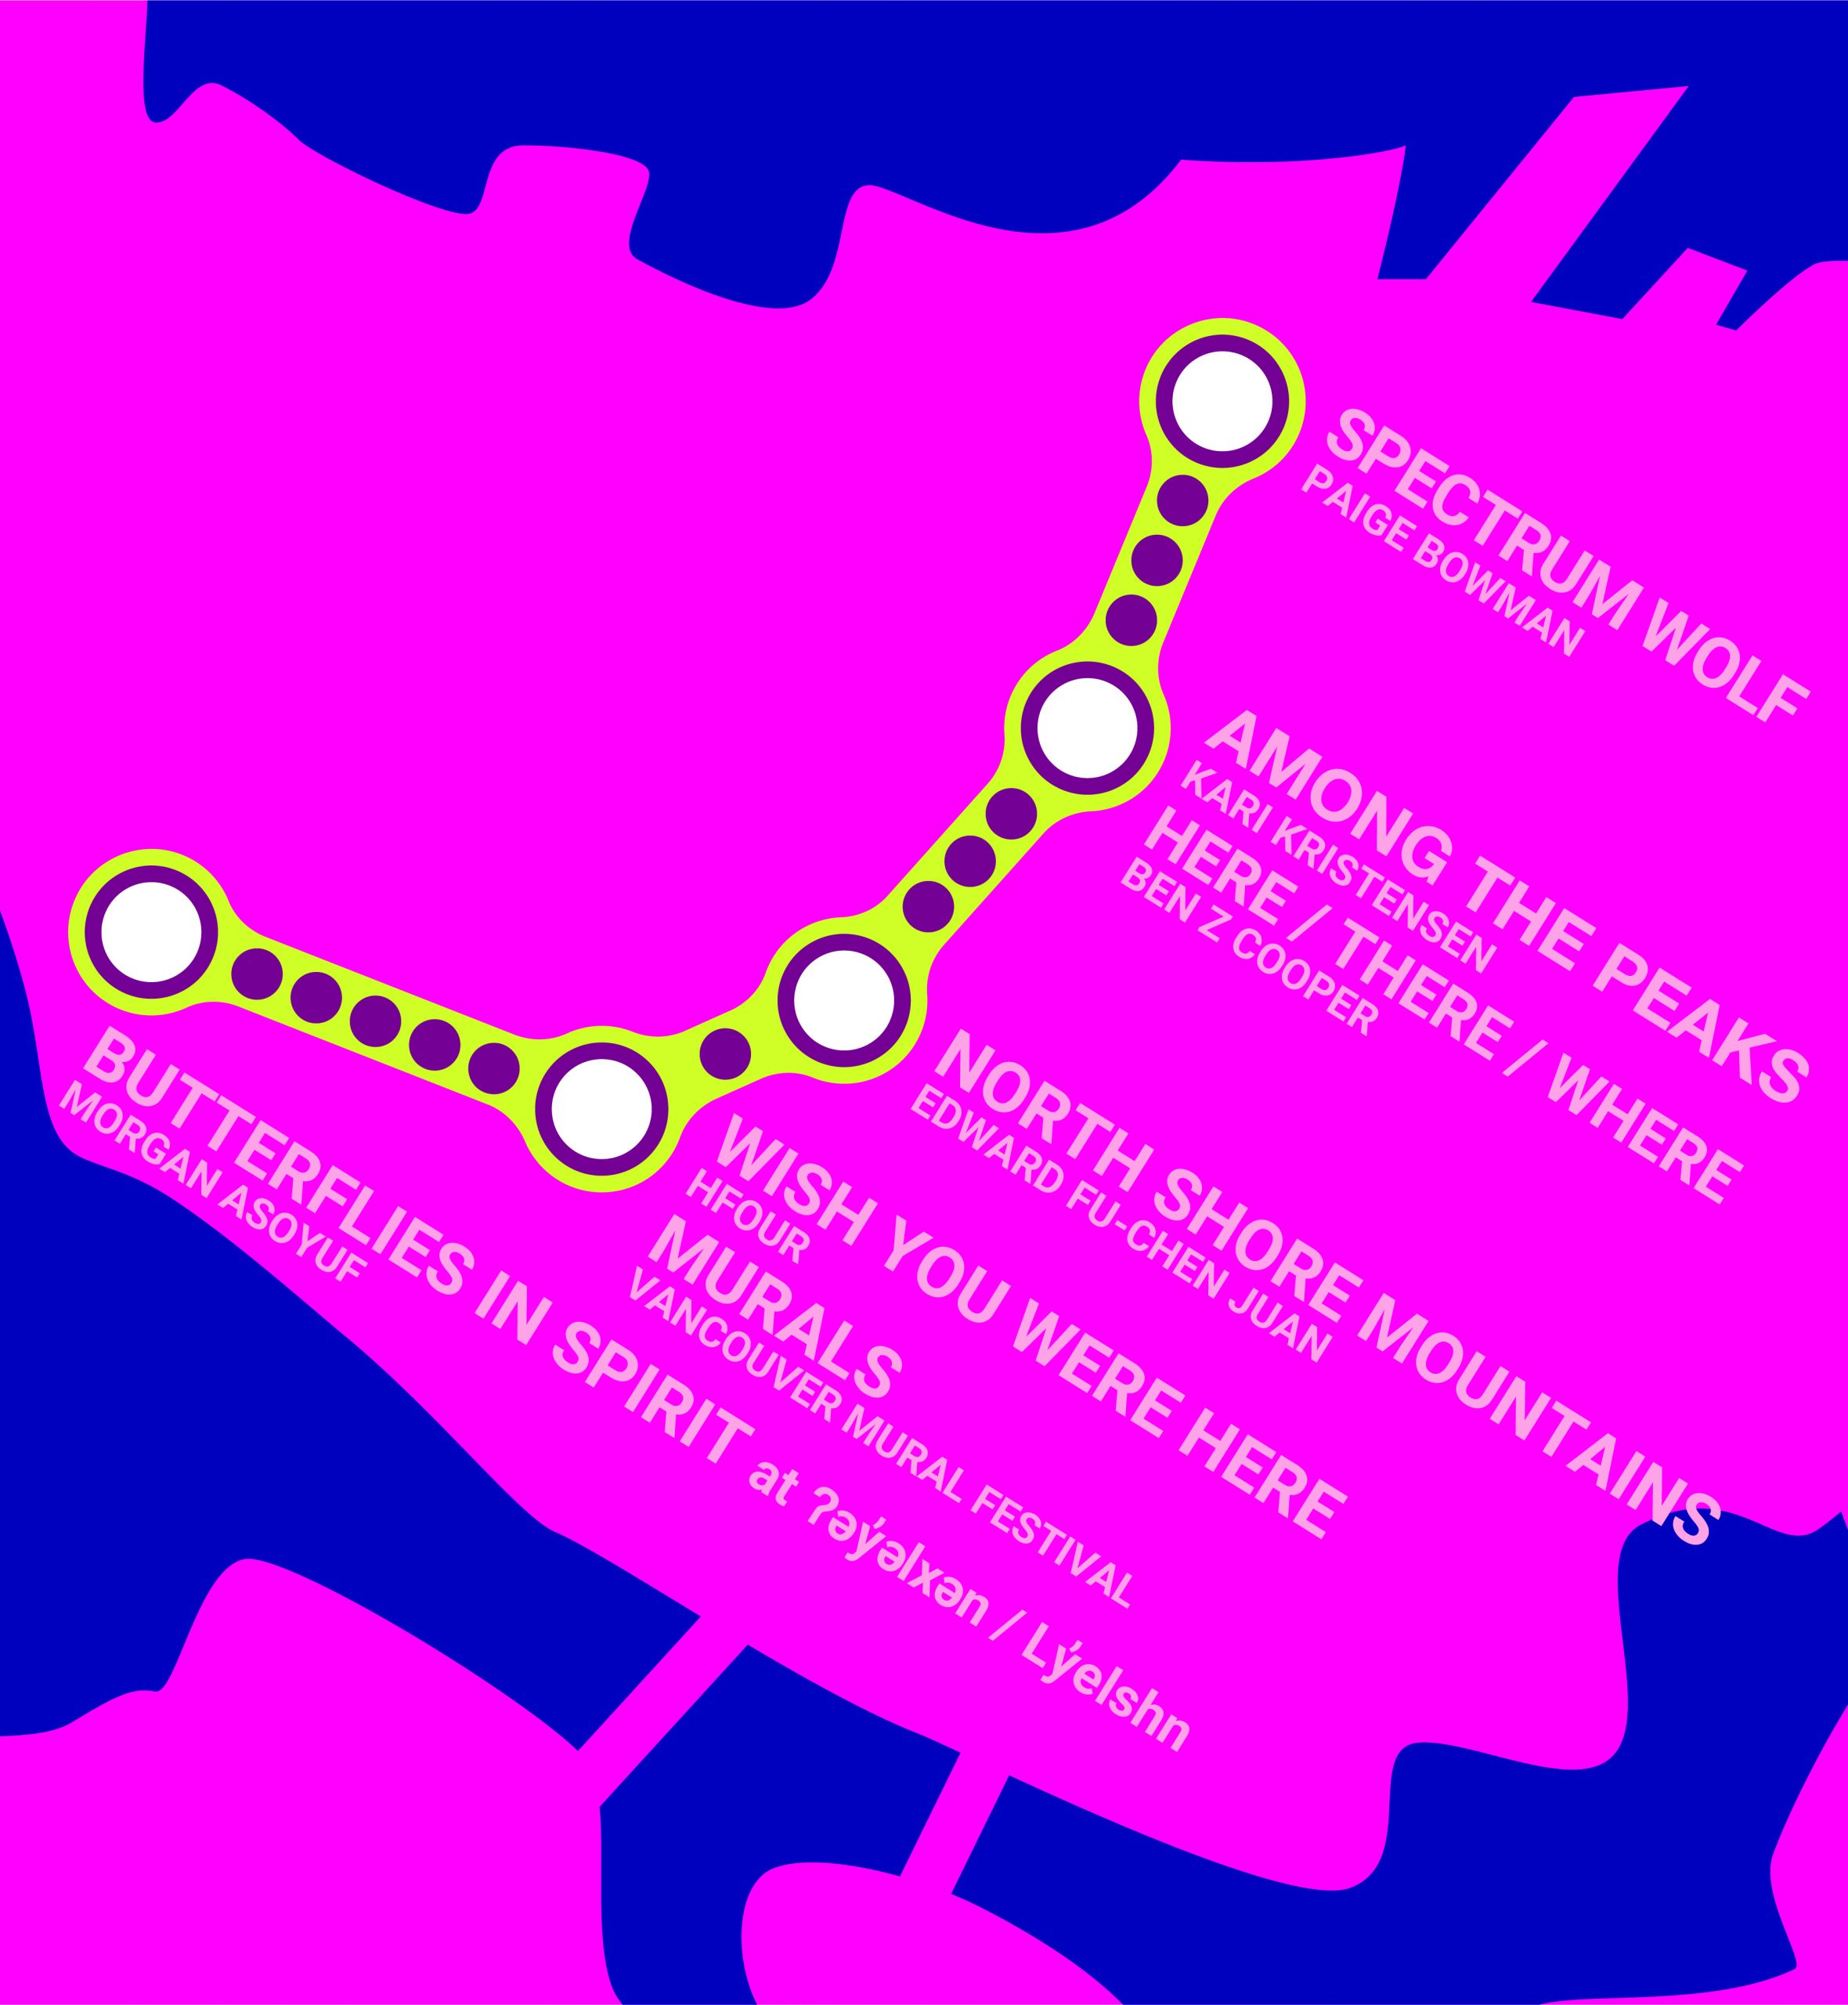 """Shows a stylized map of the Vancouver Art Walk, The map is a rough outline of Downtown Vancouver in Bright Pink with locations tagged with white circles with purple boarders inside a yellow trail. Text reads """"Spectrum Wolf, Paige Bowman; Among The Peaks, Kari Kristensen; Here/There/Where, Ben Z Cooper; North Shore Mountains, Edward Fu-Chen Juan; Wish You Were Here, Hfour; Murals, Vancouver Mural Festival; Butterflies in Spirit at ʔ y lx n / Lyelshn,"""